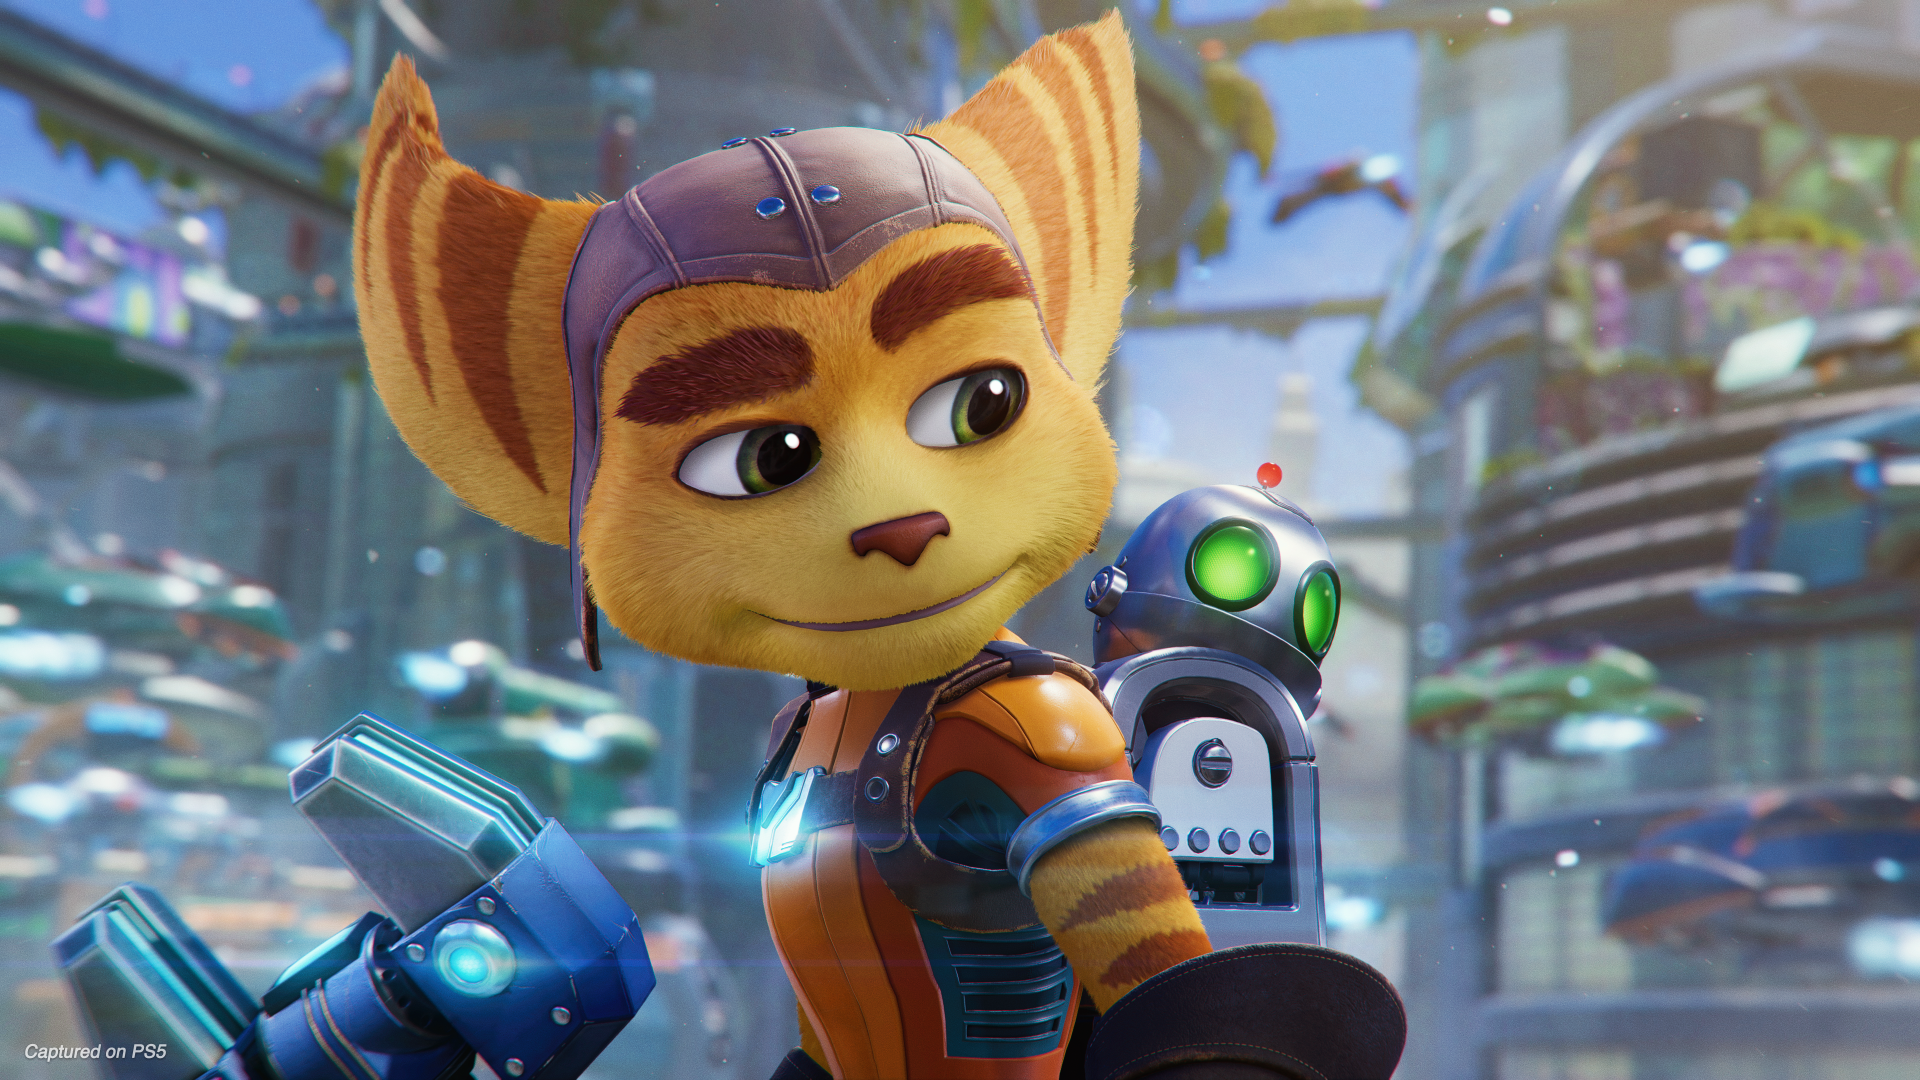 Ratchet & Clank: A Rift Apart - PS5 - Wallpapers - 1920x1080